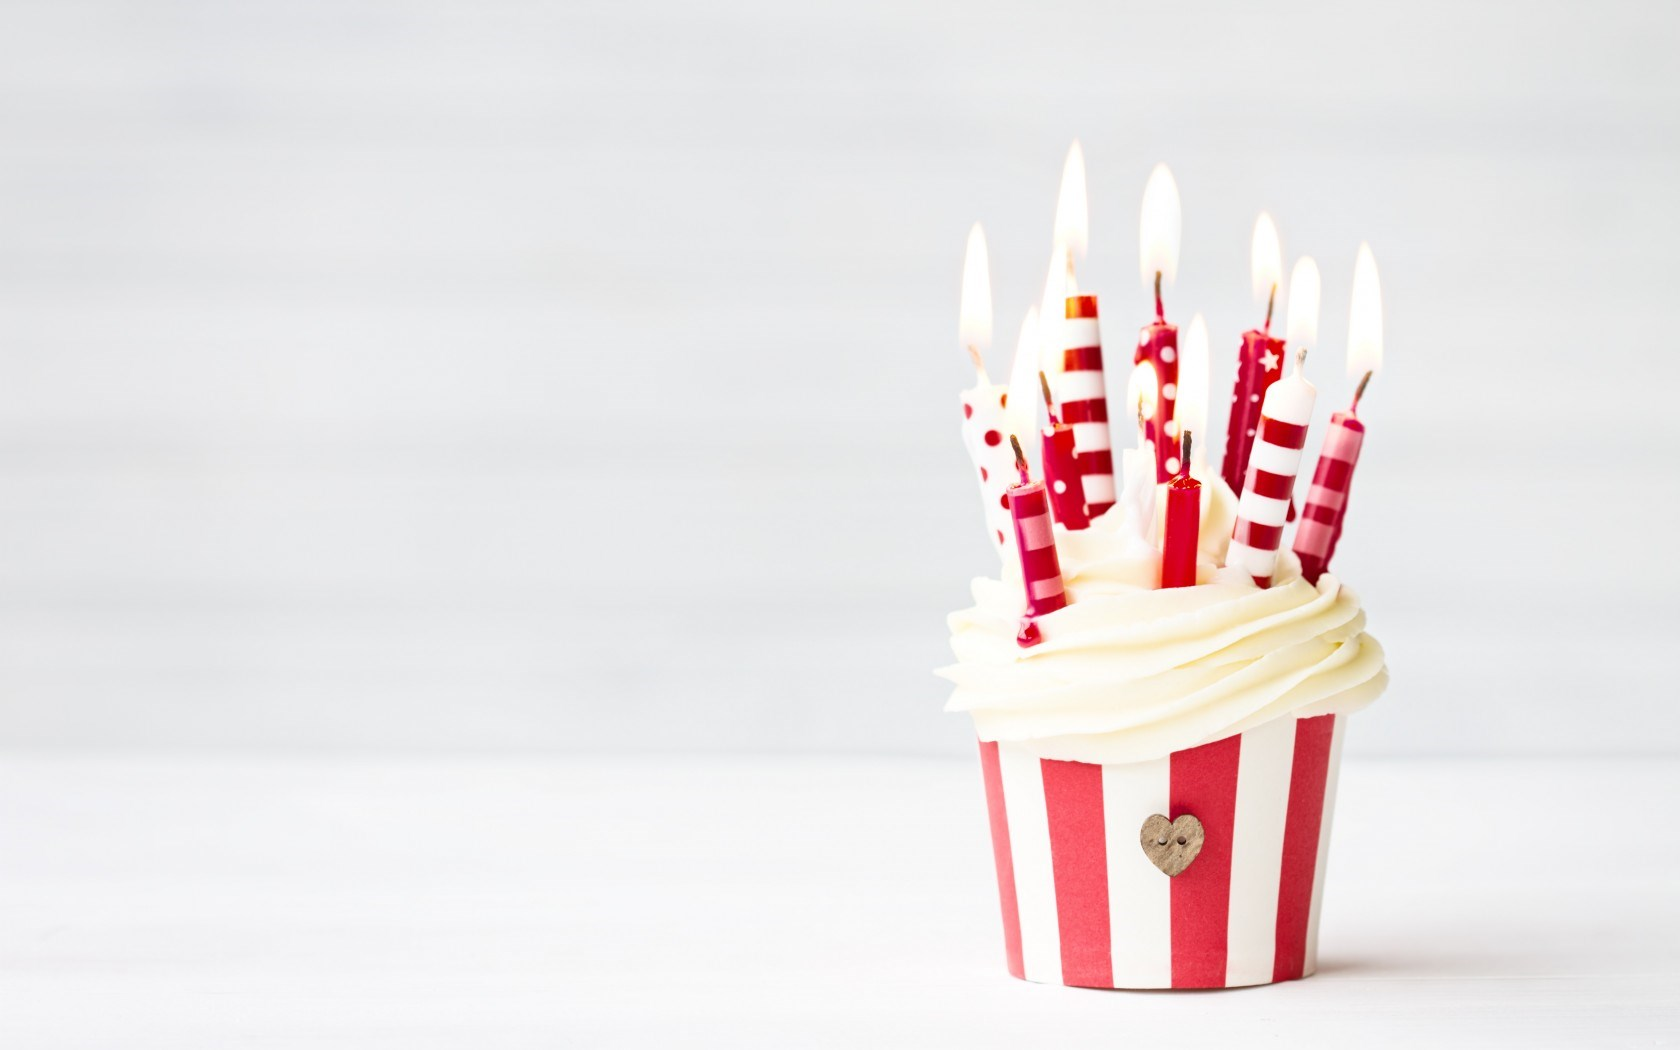 cool birthday wallpapers ; Cute-Birthday-Cake-wallpaper-Android